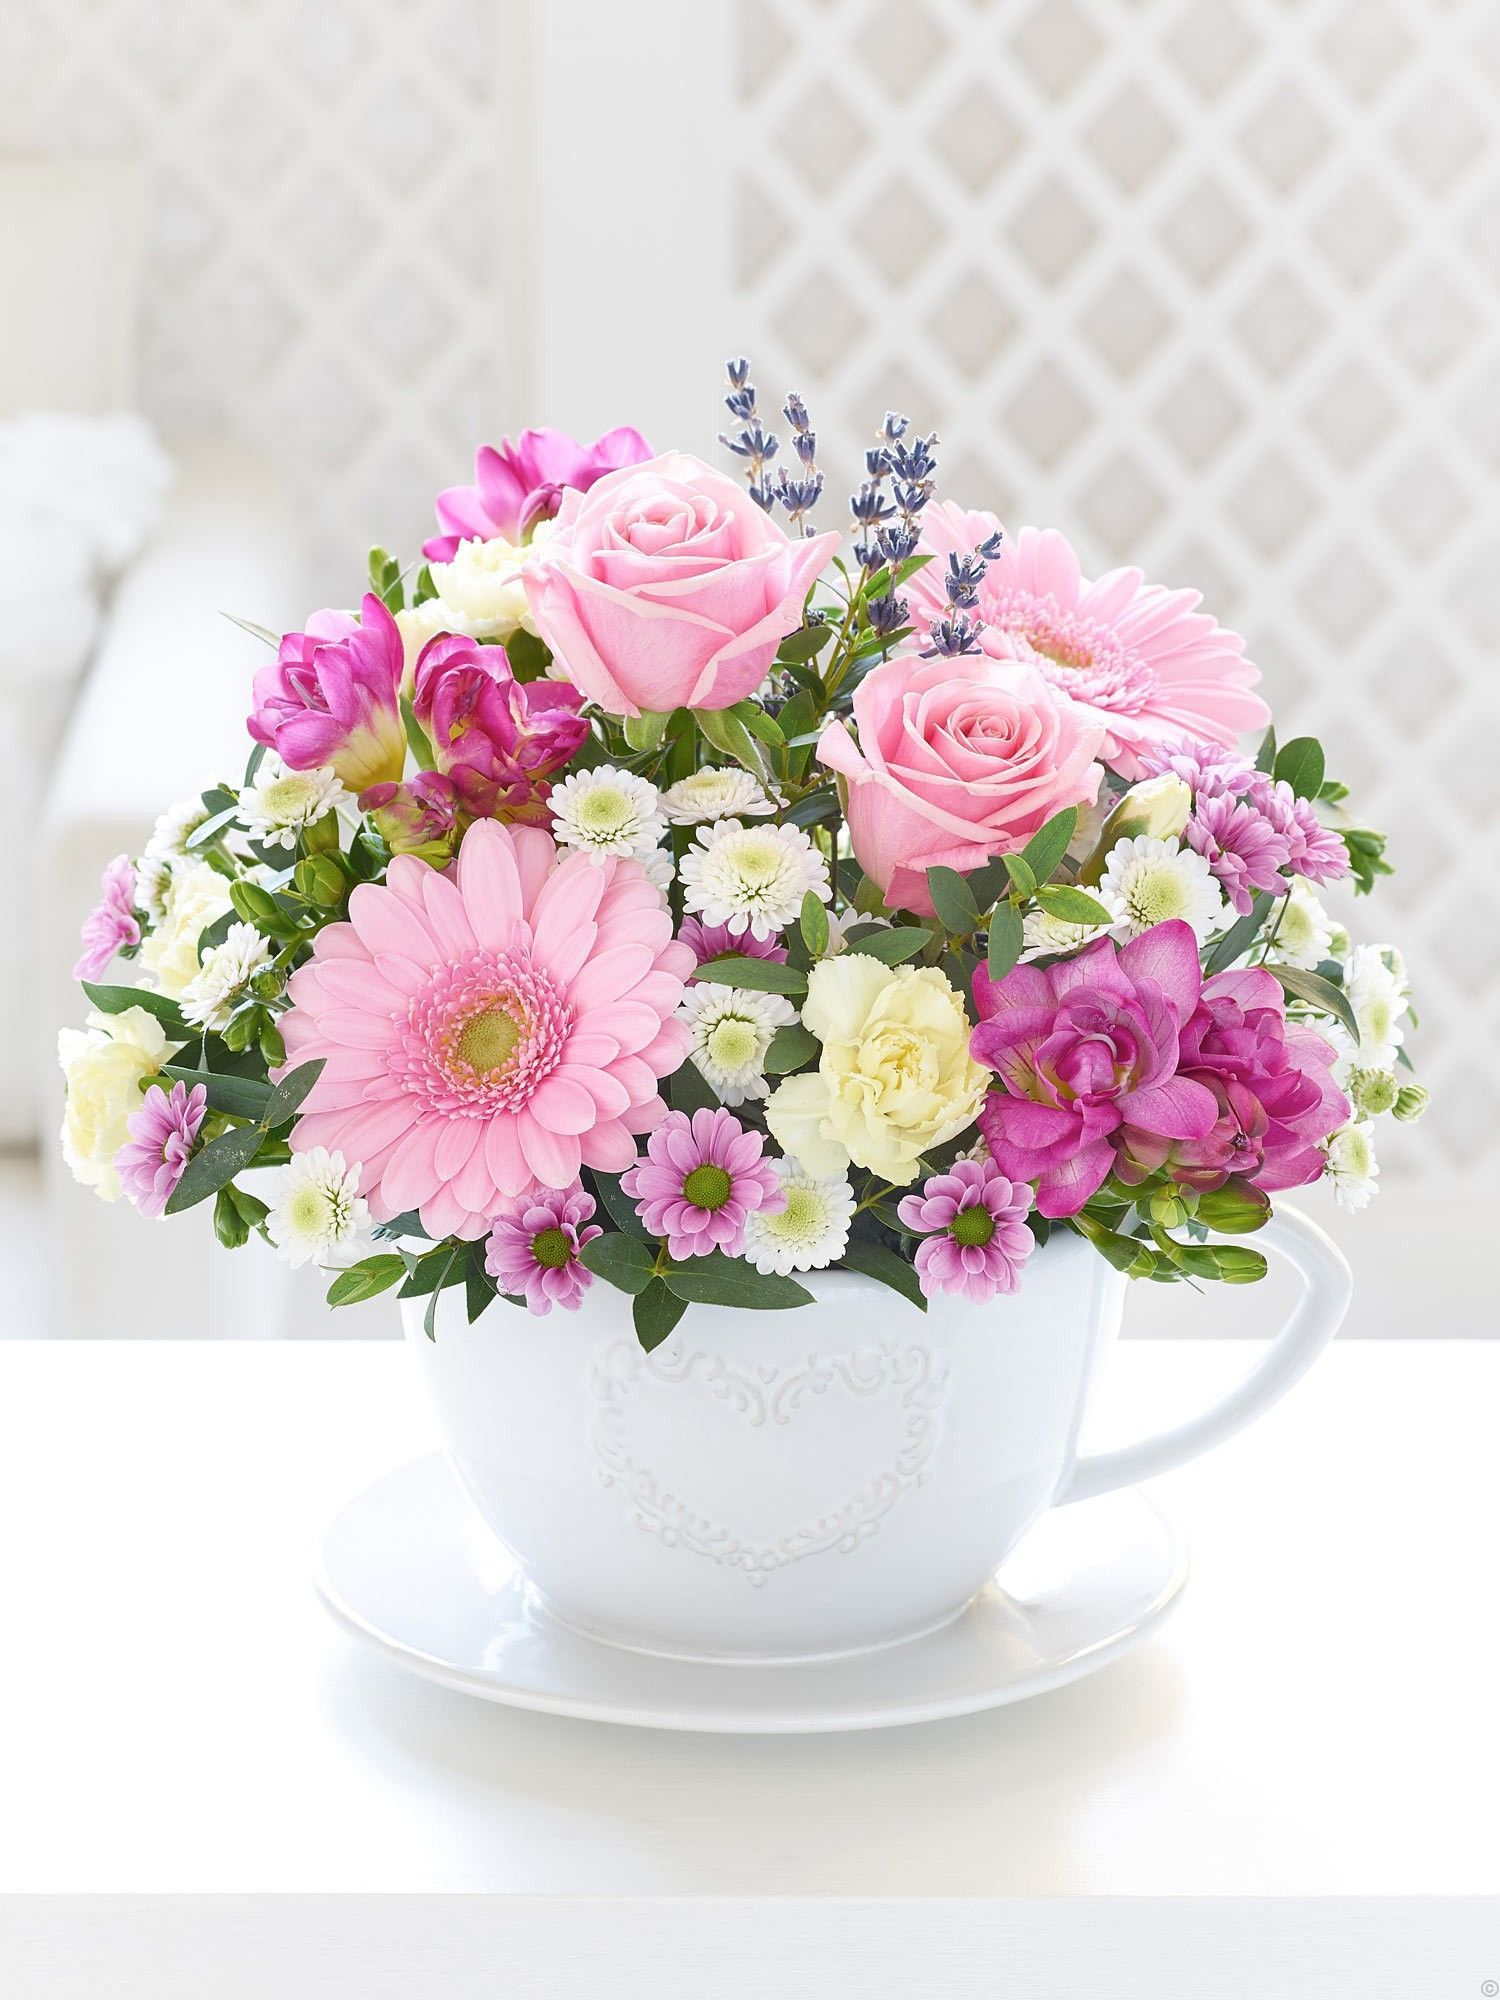 Teacup & Saucer Arrangement Flowers Flower